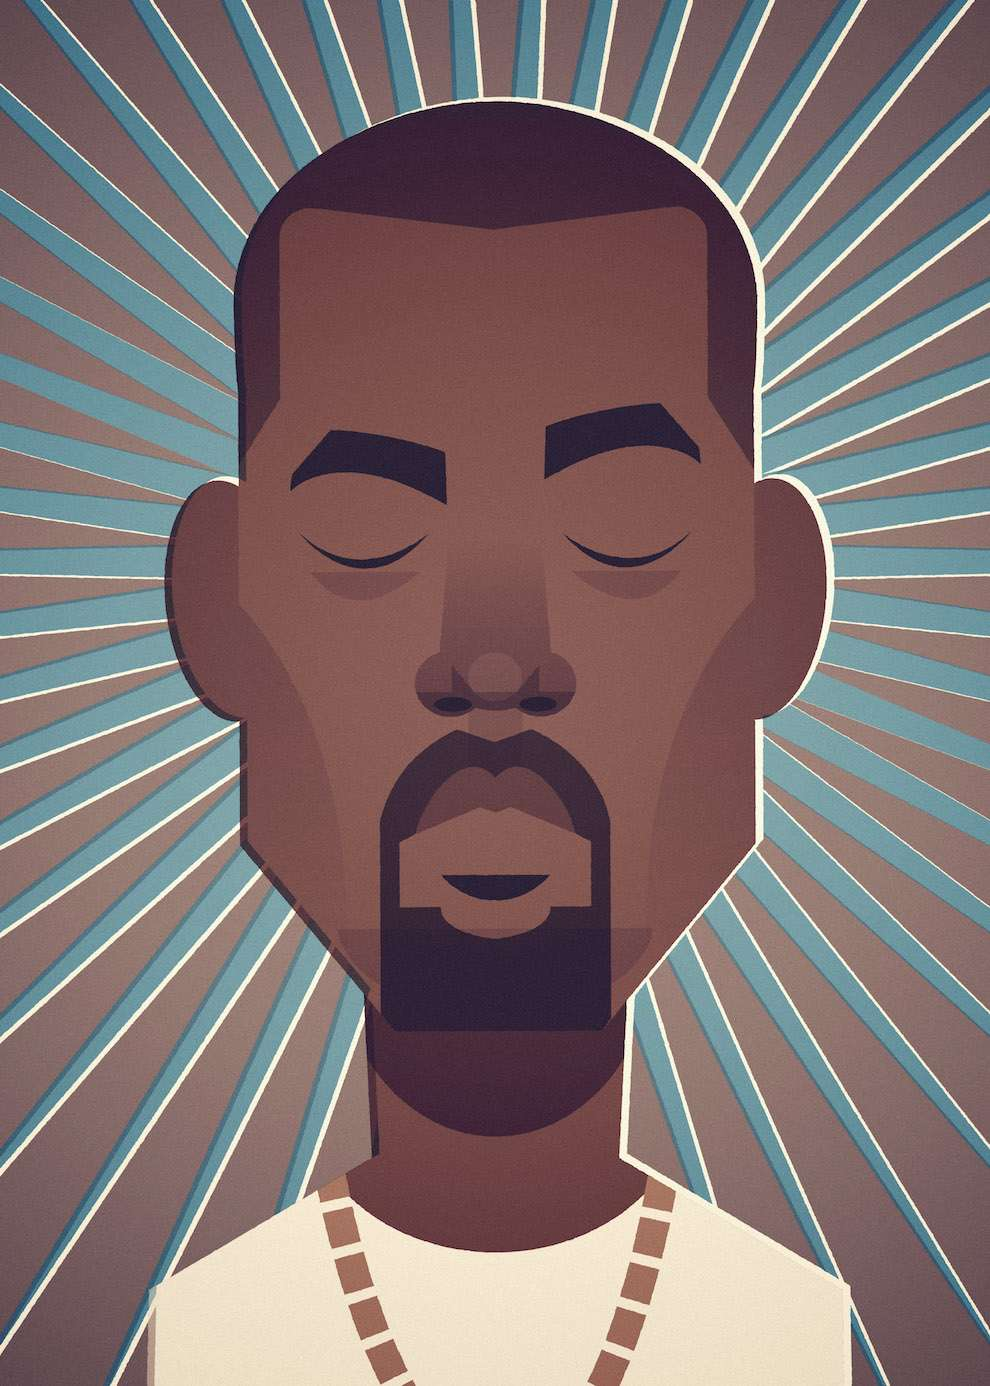 Stanley Chow, Minimal and graphic portrait of Kanye West